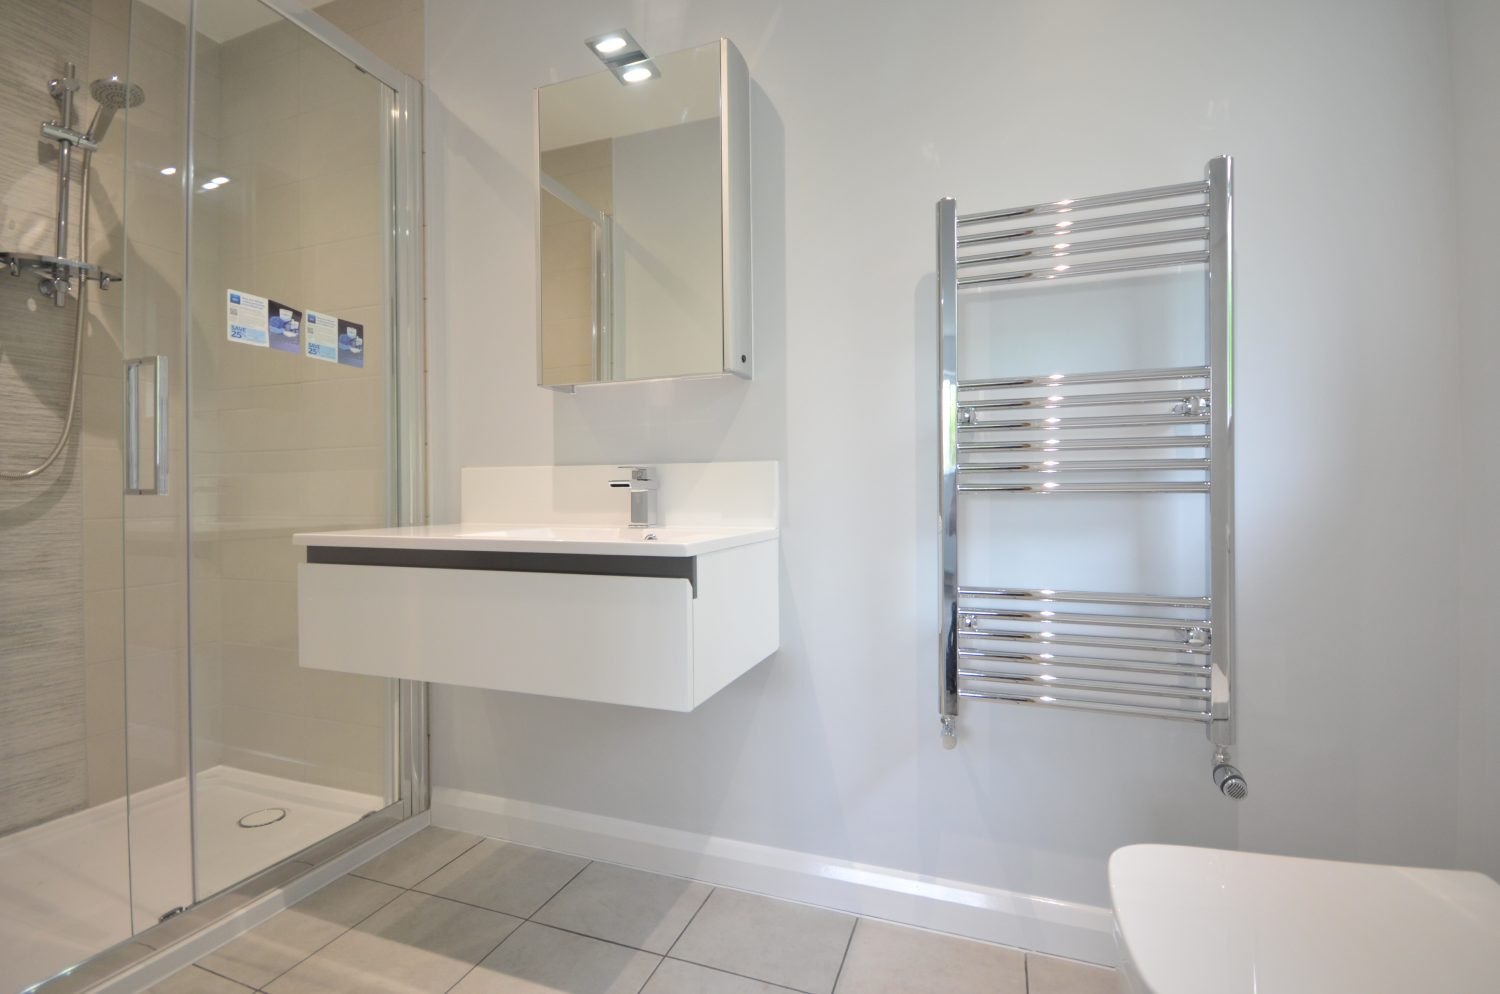 modern bathroom suite with shower bathroom cabinet sink and towel radiator